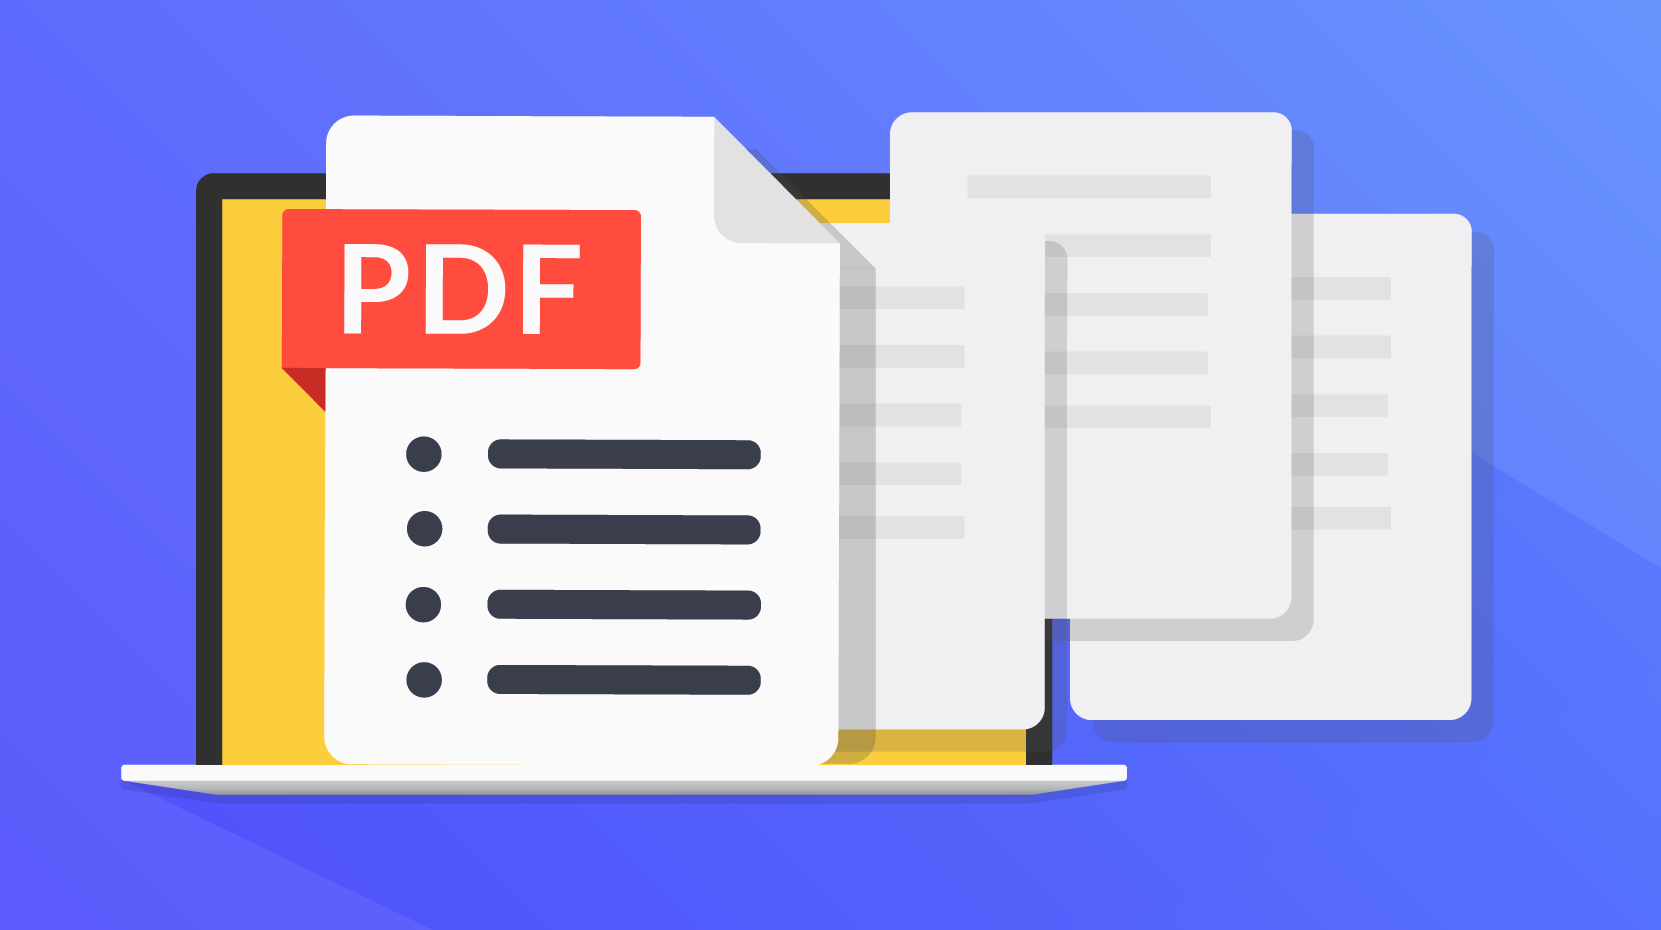 A multi-page document labeled PDF